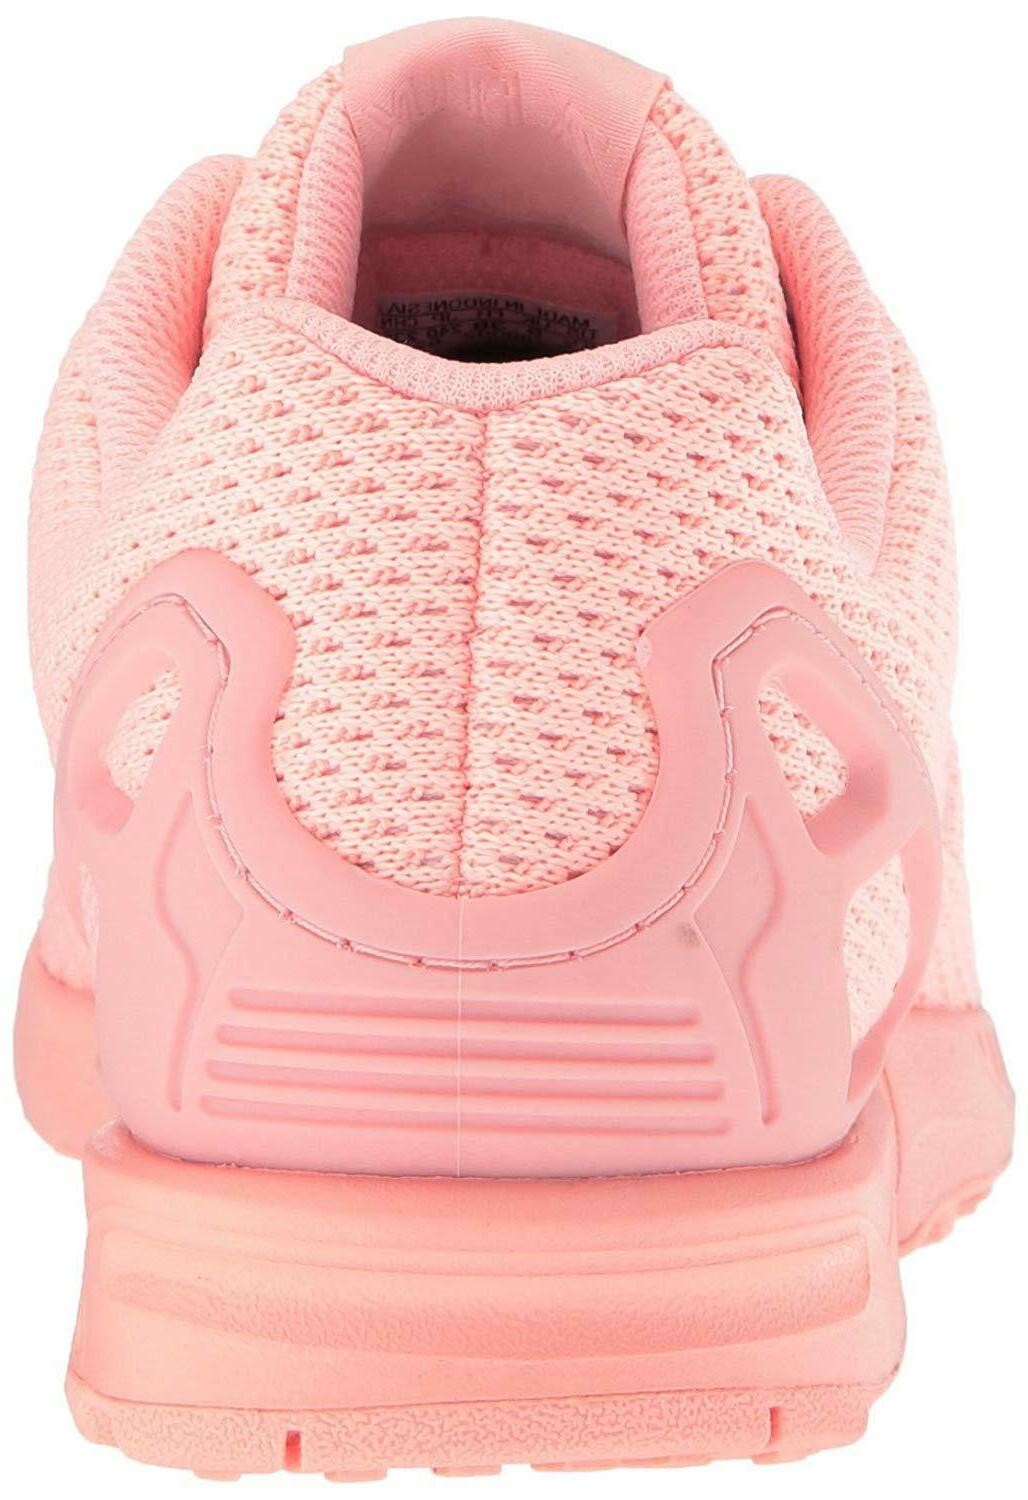 Adidas ZX Girls Sneakers Kids Size 6 Pink